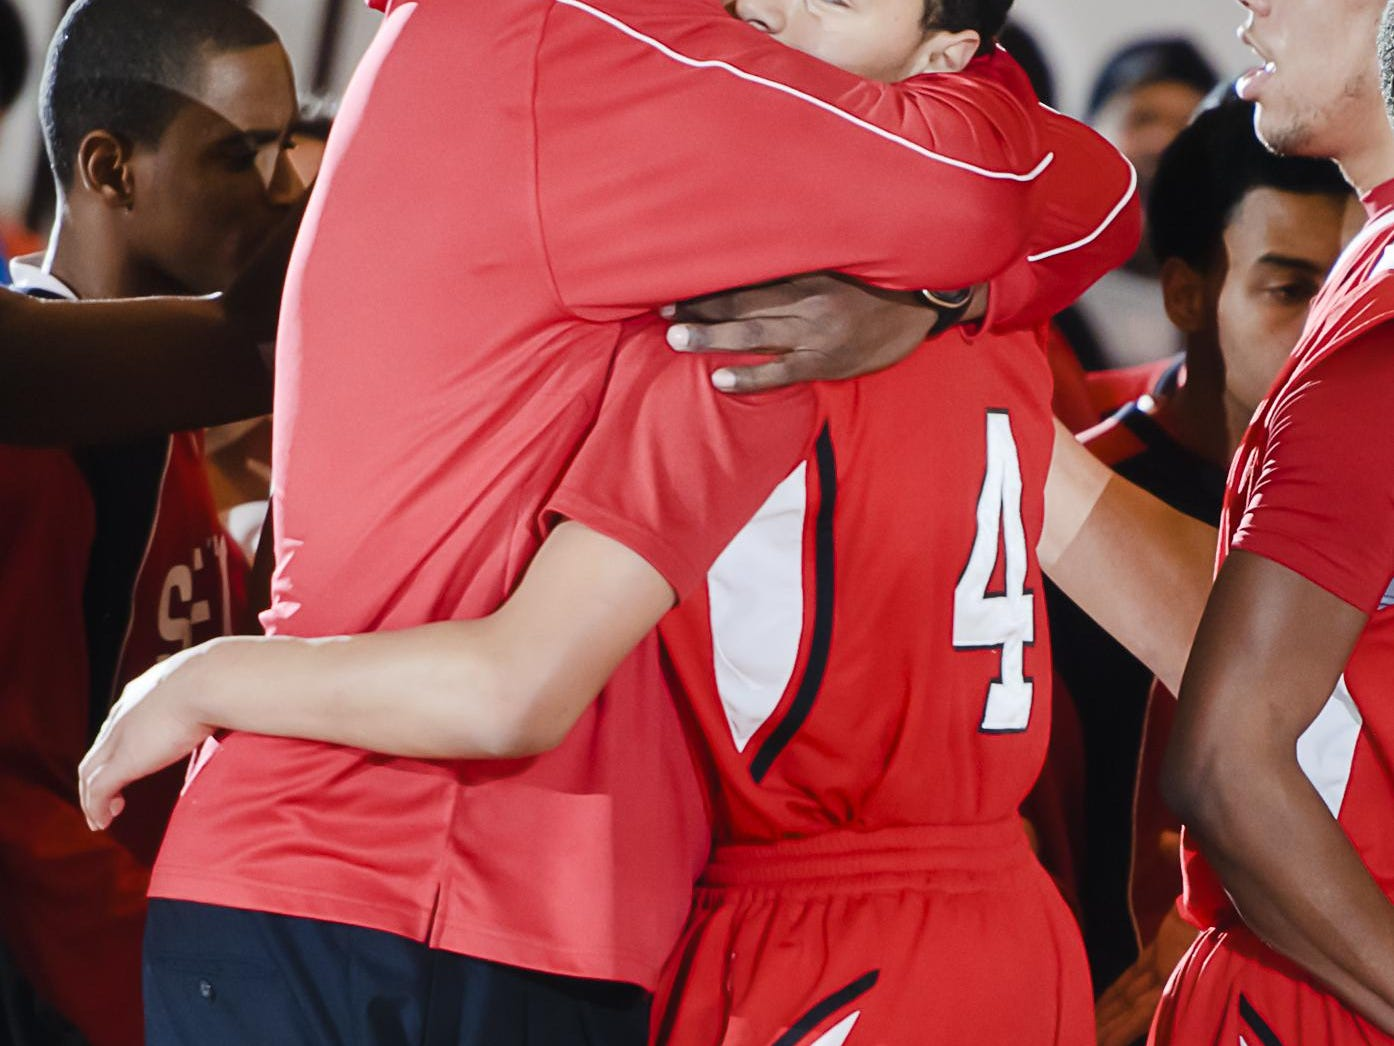 Sexton coach Carlton Valentine hugs Bryn Forbes after knocking down a 3-point shot in their 2011 Class B Boys State quarterfinal game against Dearborn Divine Child. Denzel Valentine is to the right.